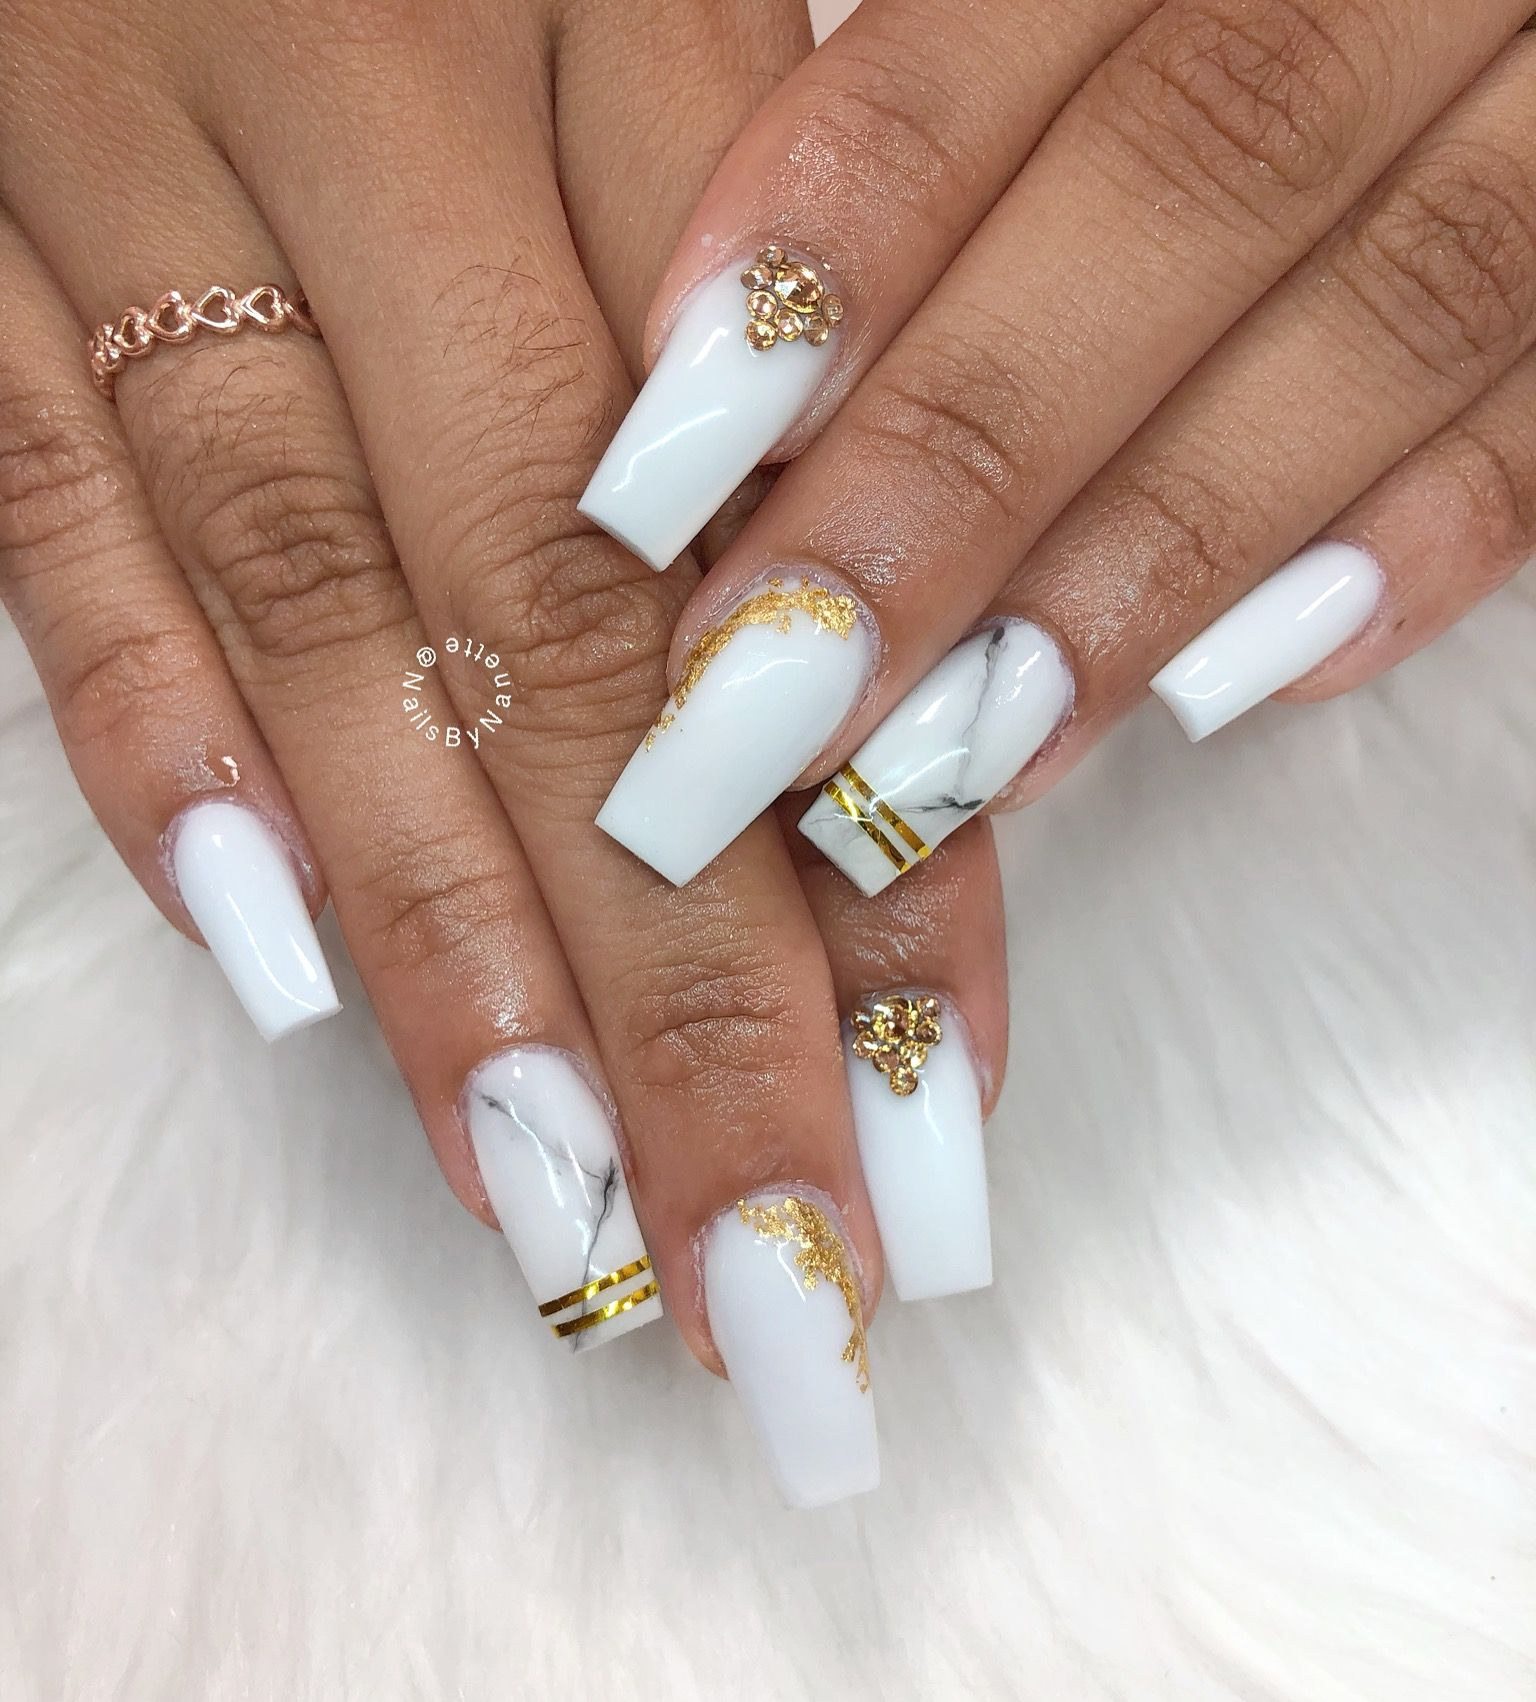 White Coffin Long Marble Nails With Gold Tape And Gold Foil Designs White Nails With Gold Gold Nails Gold Acrylic Nails